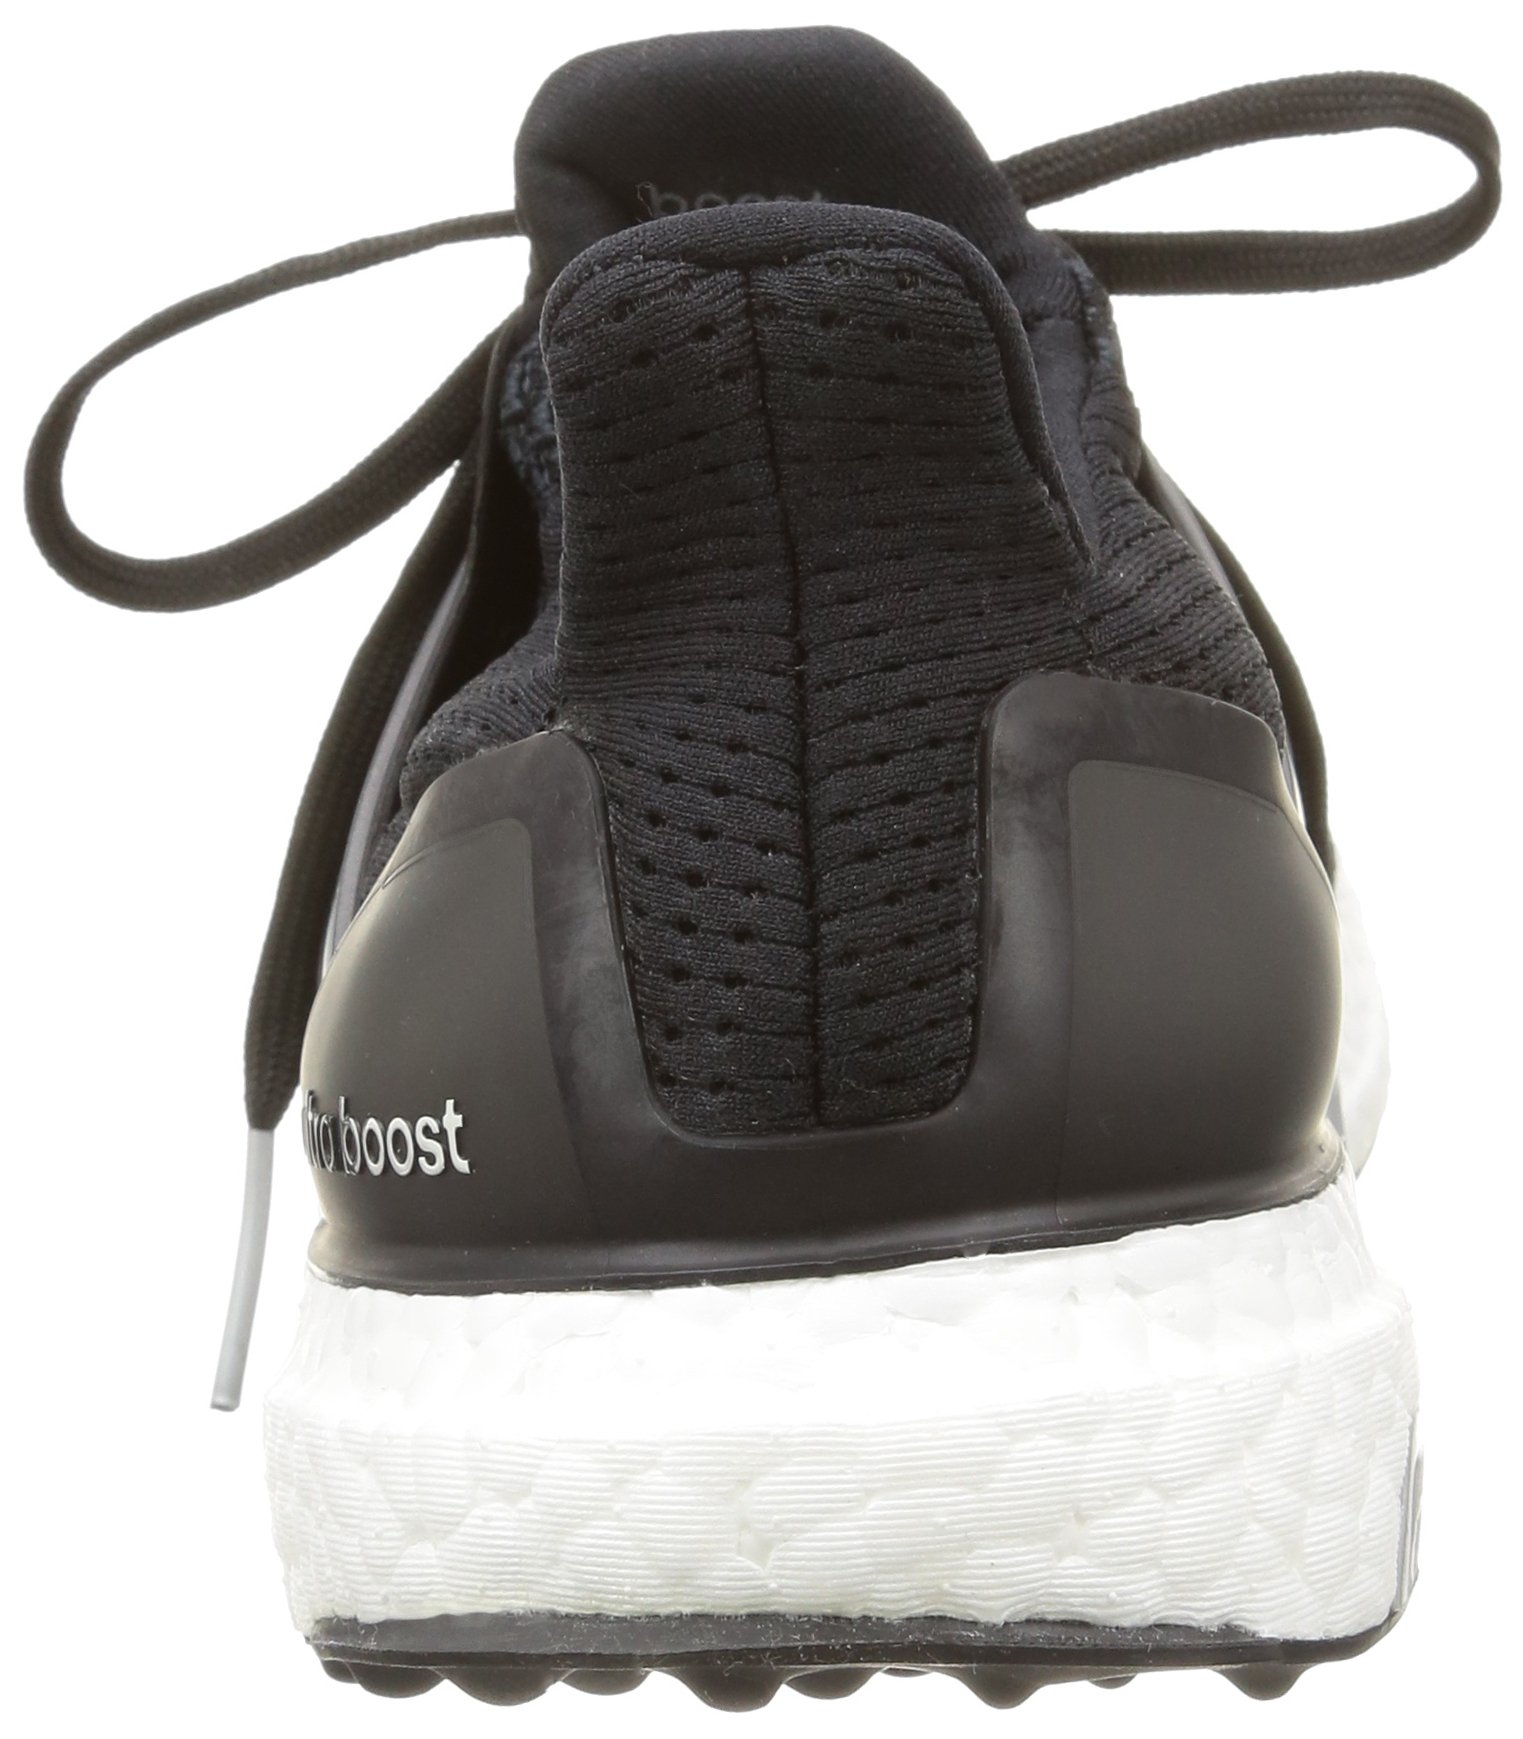 71YDCnypIPL - adidas Ultra Boost, Women's Running Shoes